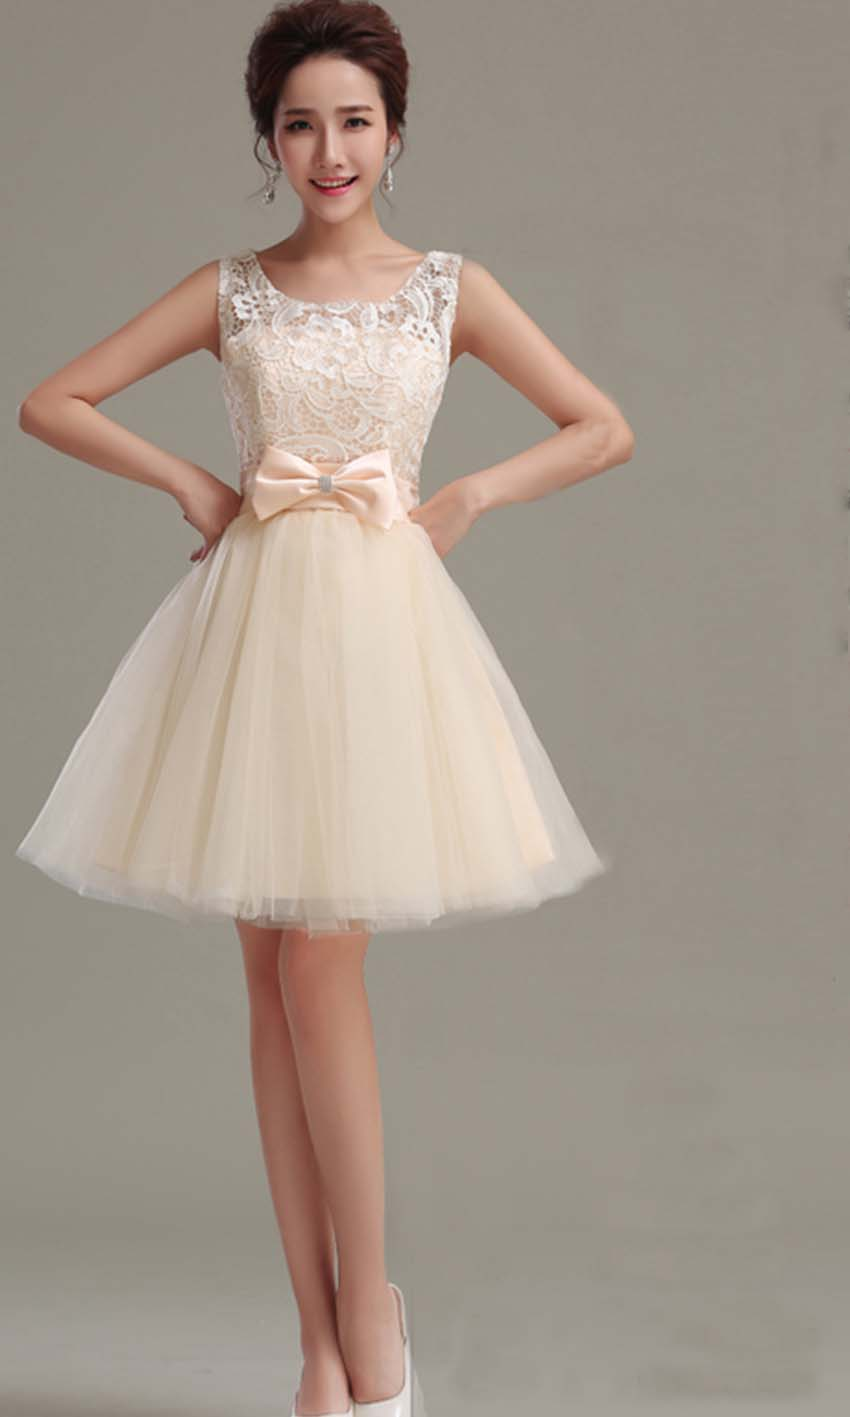 Cute Beige Retro Bow Knot Short Prom Gown KSP348 [KSP348] - £86.00 ...